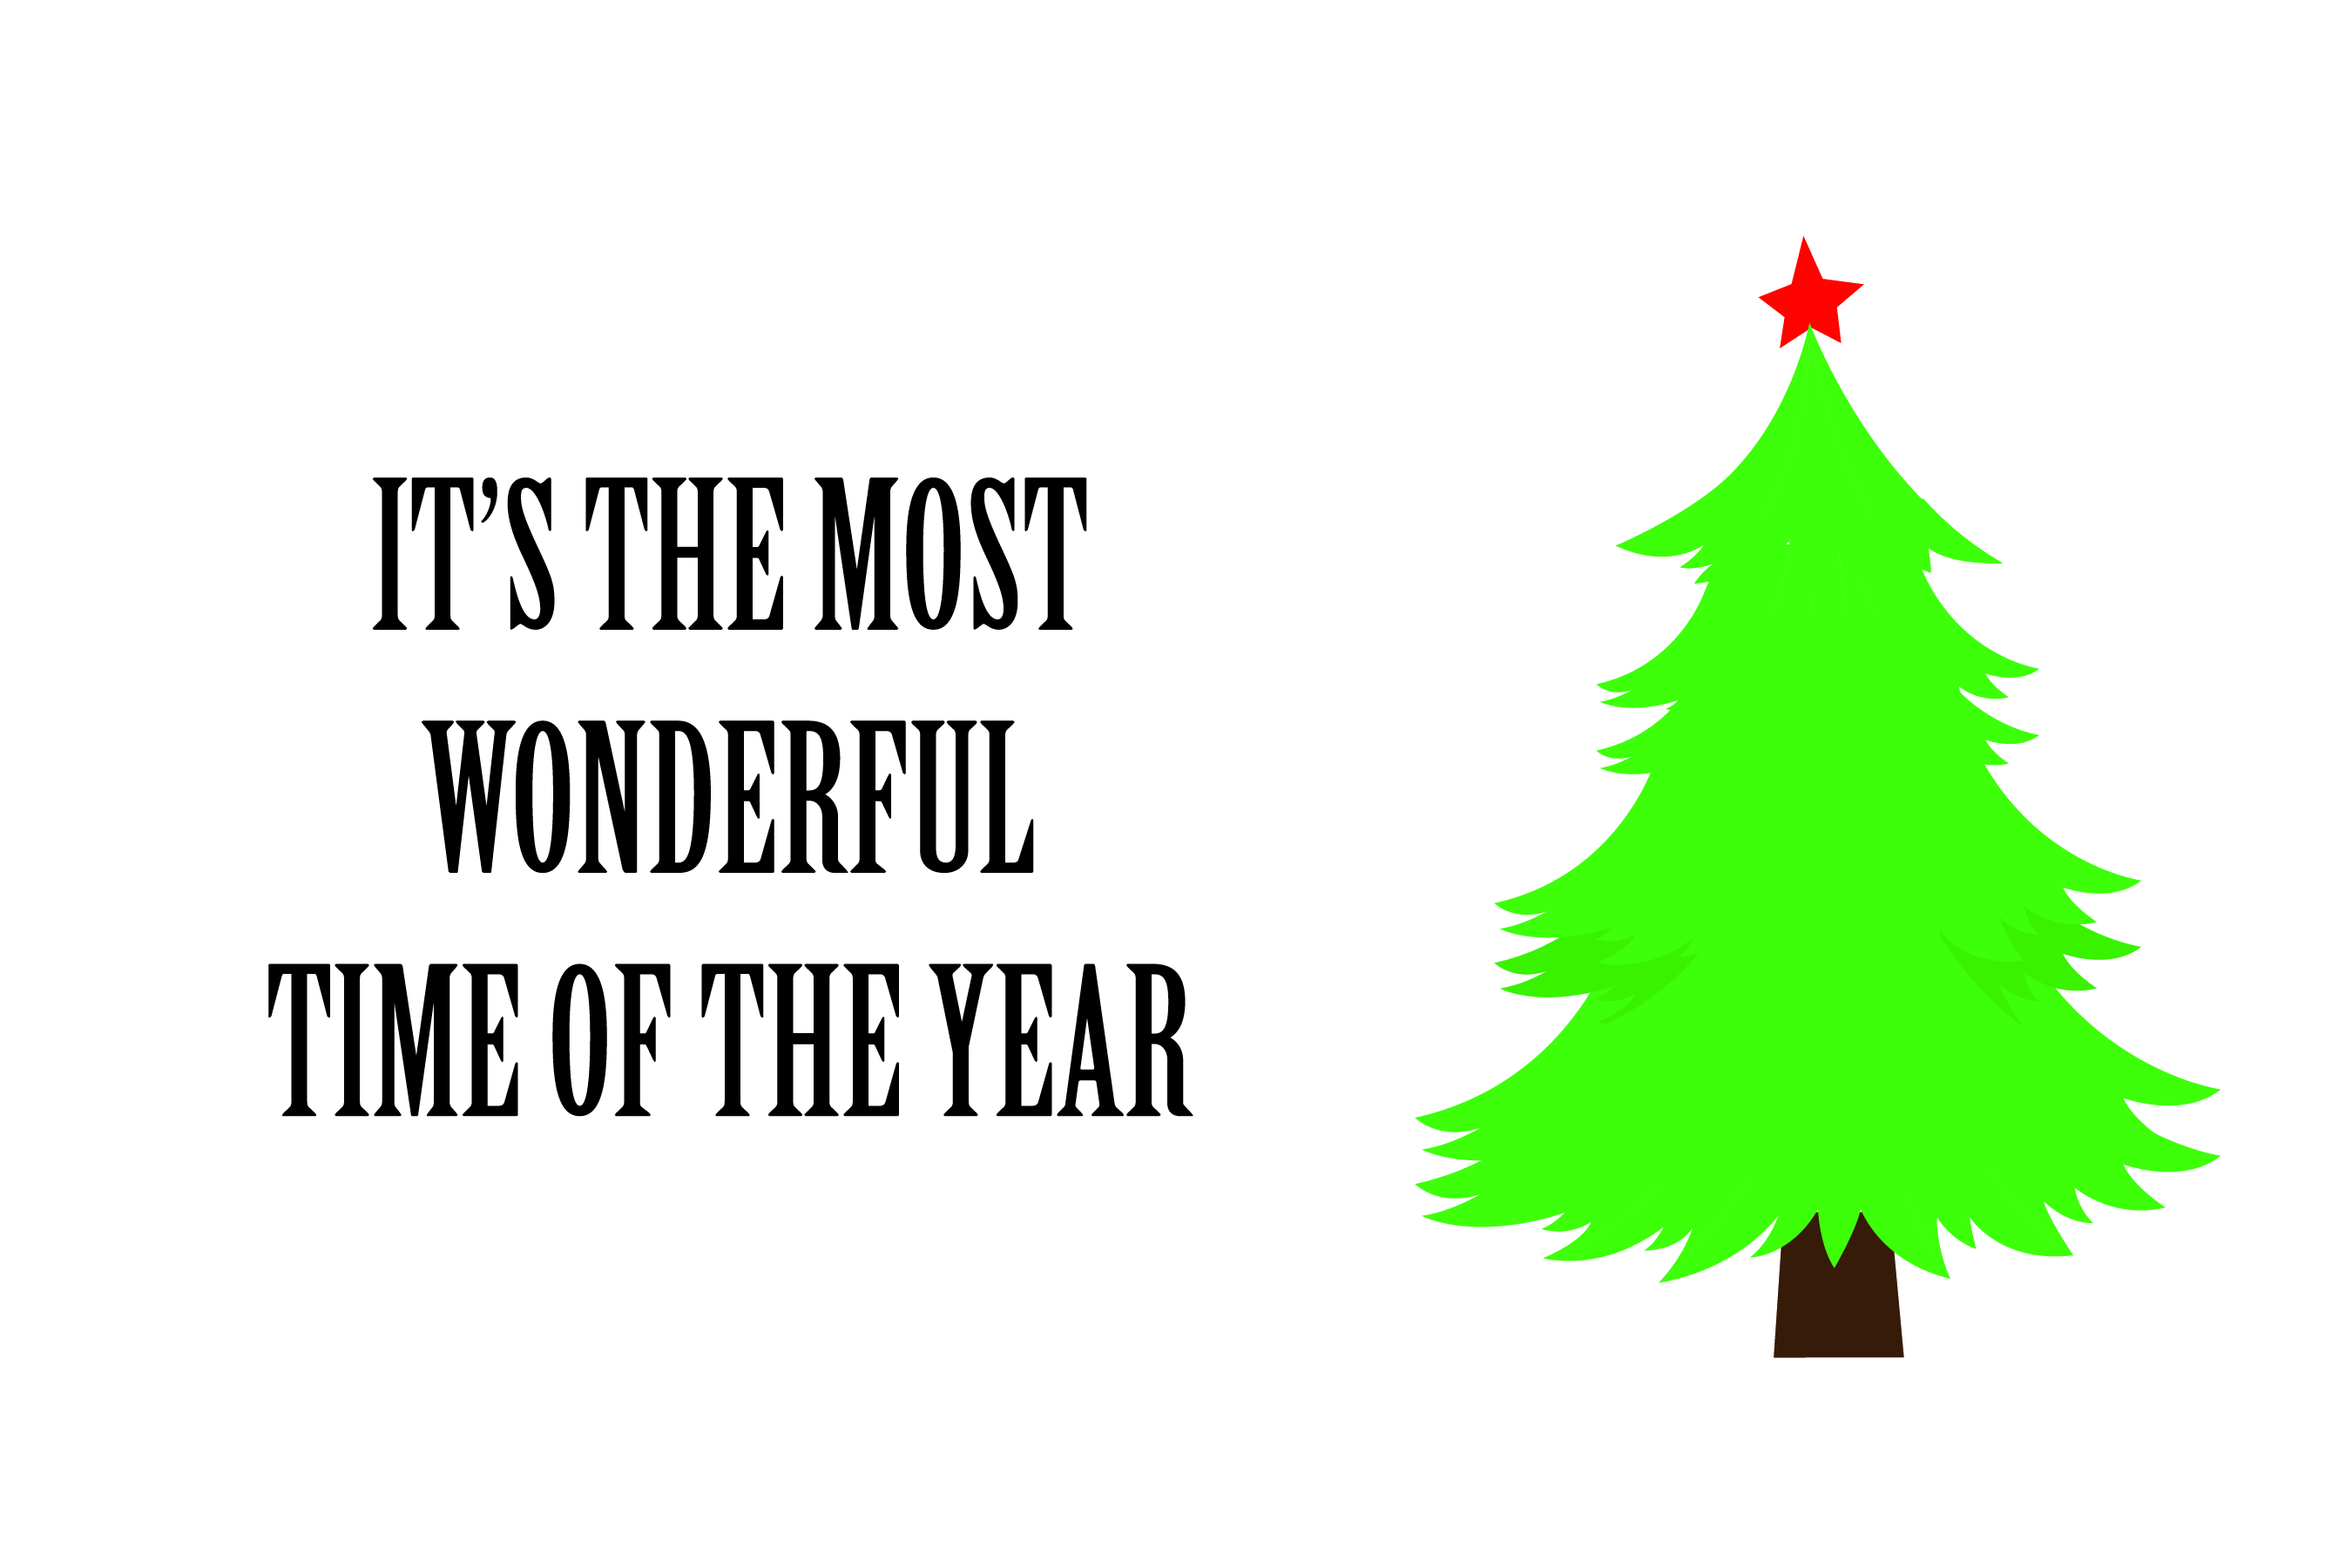 Wonderful time of the year - SVG Bundle 16 Designs example image 3